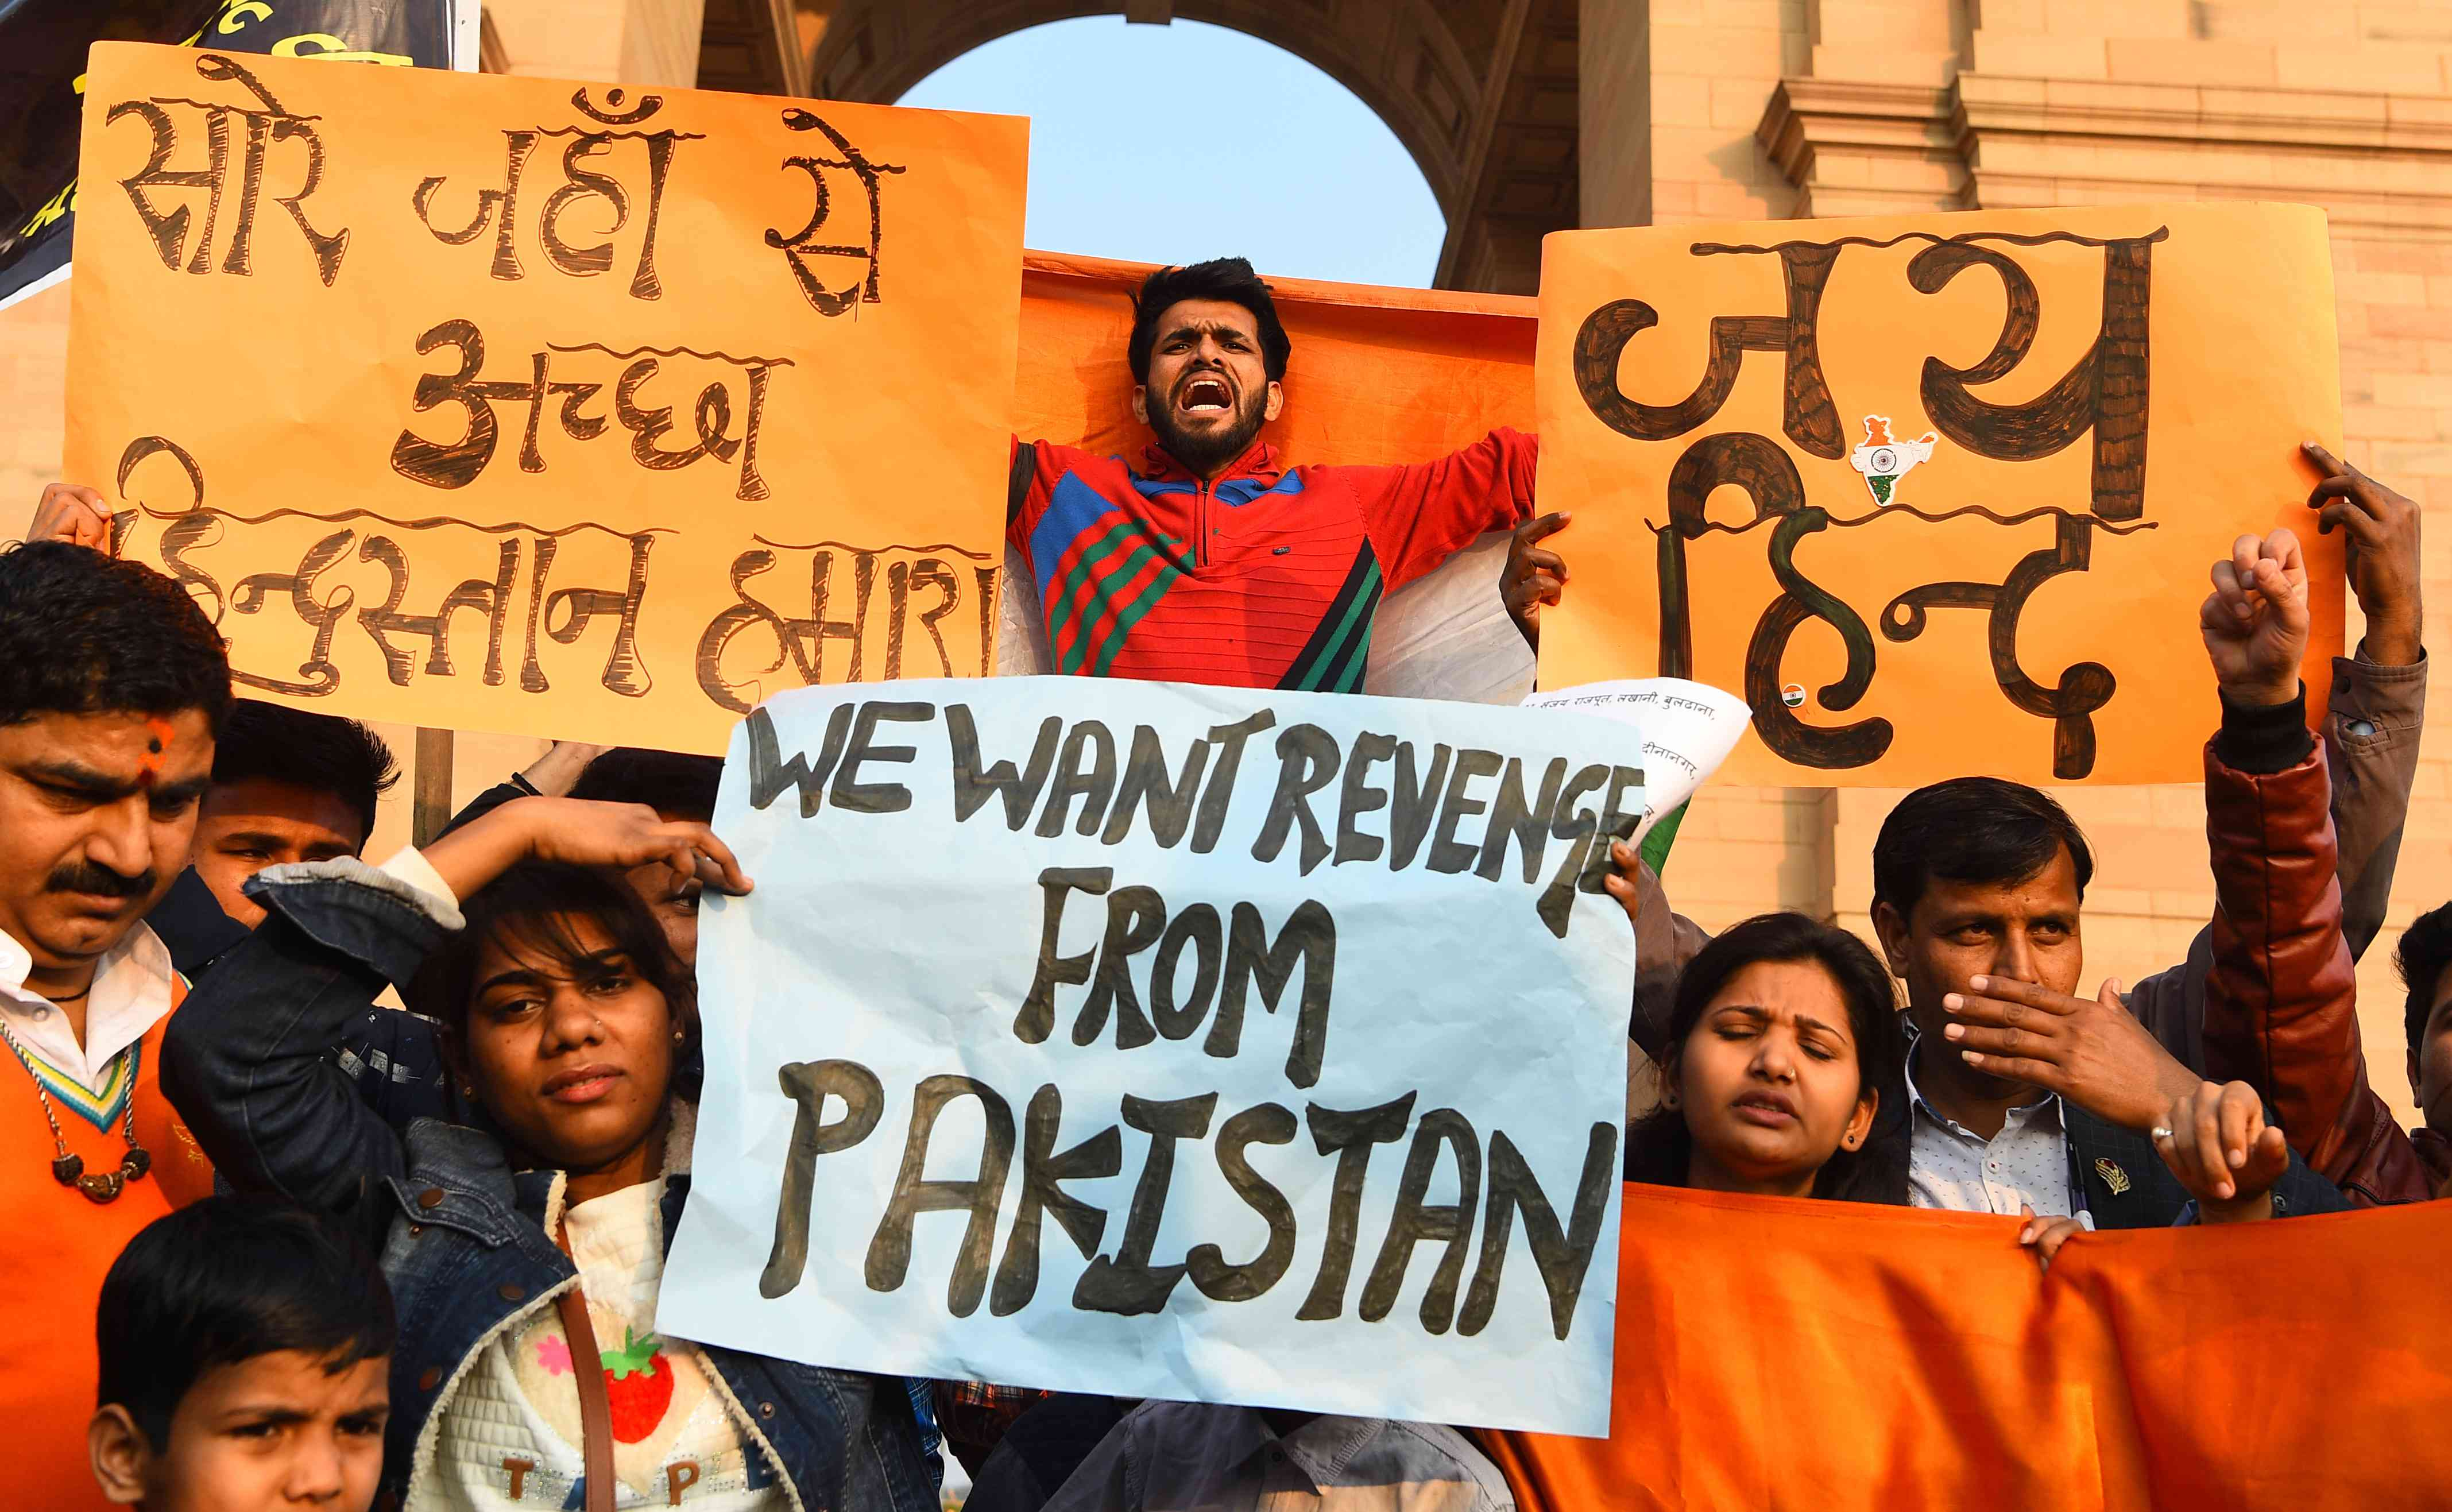 Protestors demand action against Pakistan at Delhi's India Gate on Saturday after a terror attack killed 40 Central Reserve Police Force personnel on February 14. Credit: Sajjad Hussain/ AFP